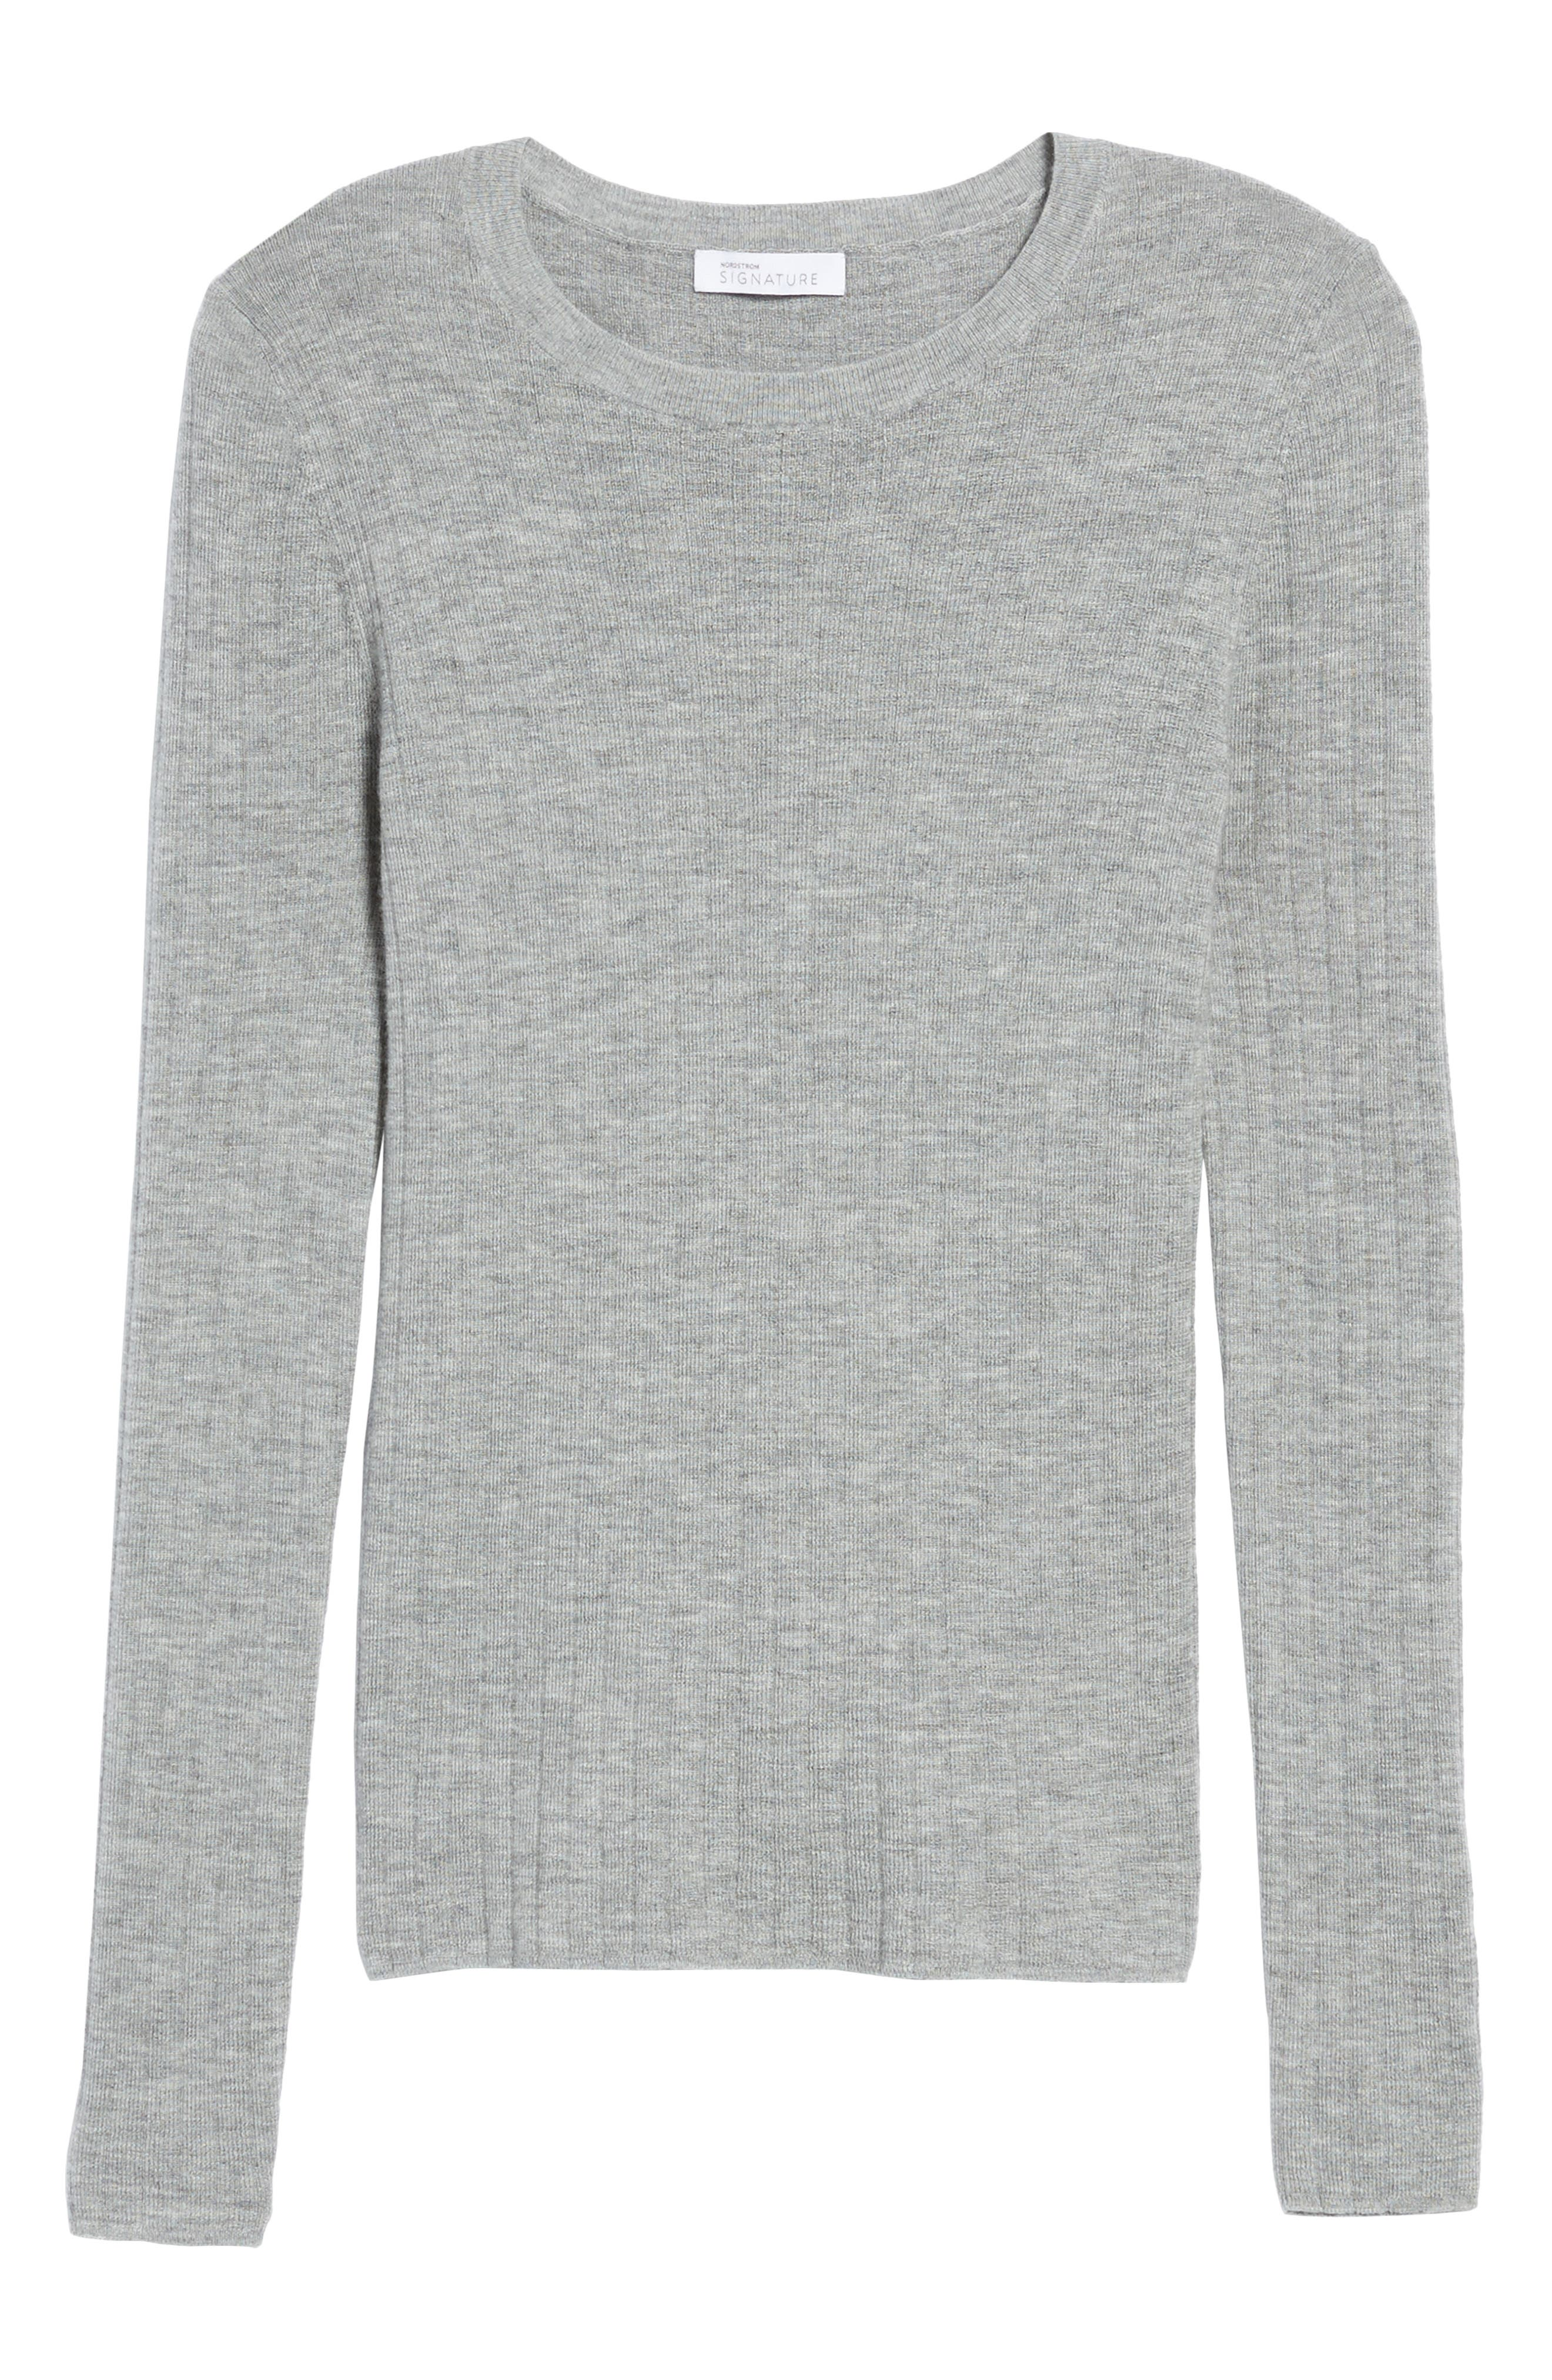 Ribbed Cashmere Sweater,                             Alternate thumbnail 6, color,                             030